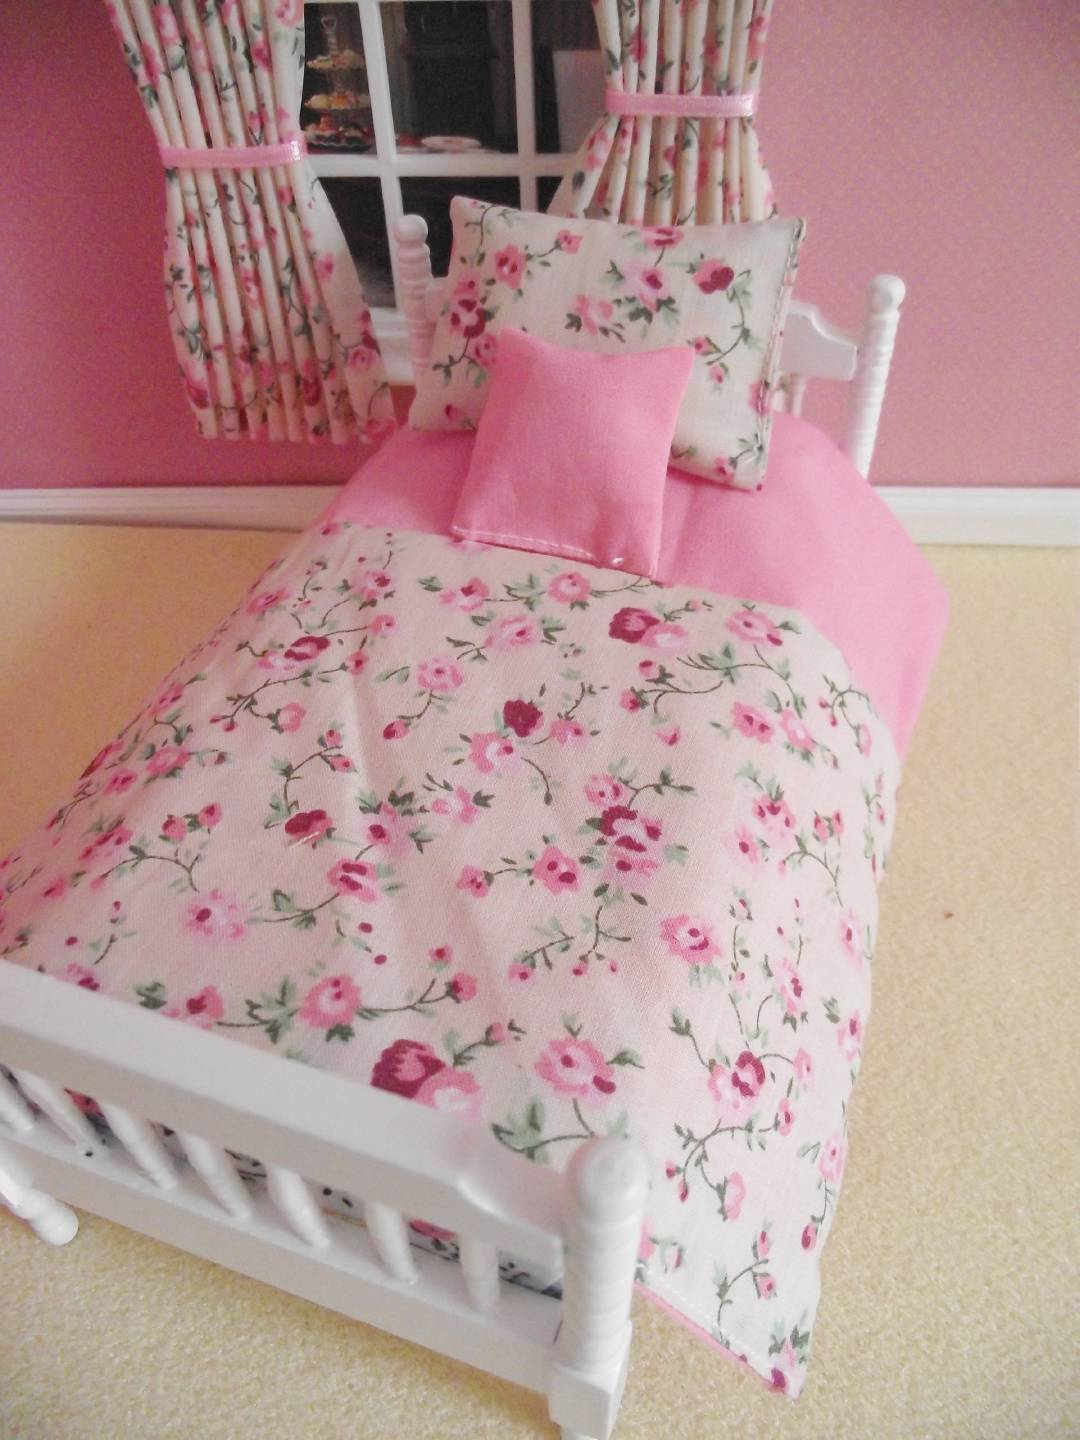 Miniature dolls house 12th scale single pink floral bedding set 3pce miniature dolls house 12th scale single pink floral mightylinksfo